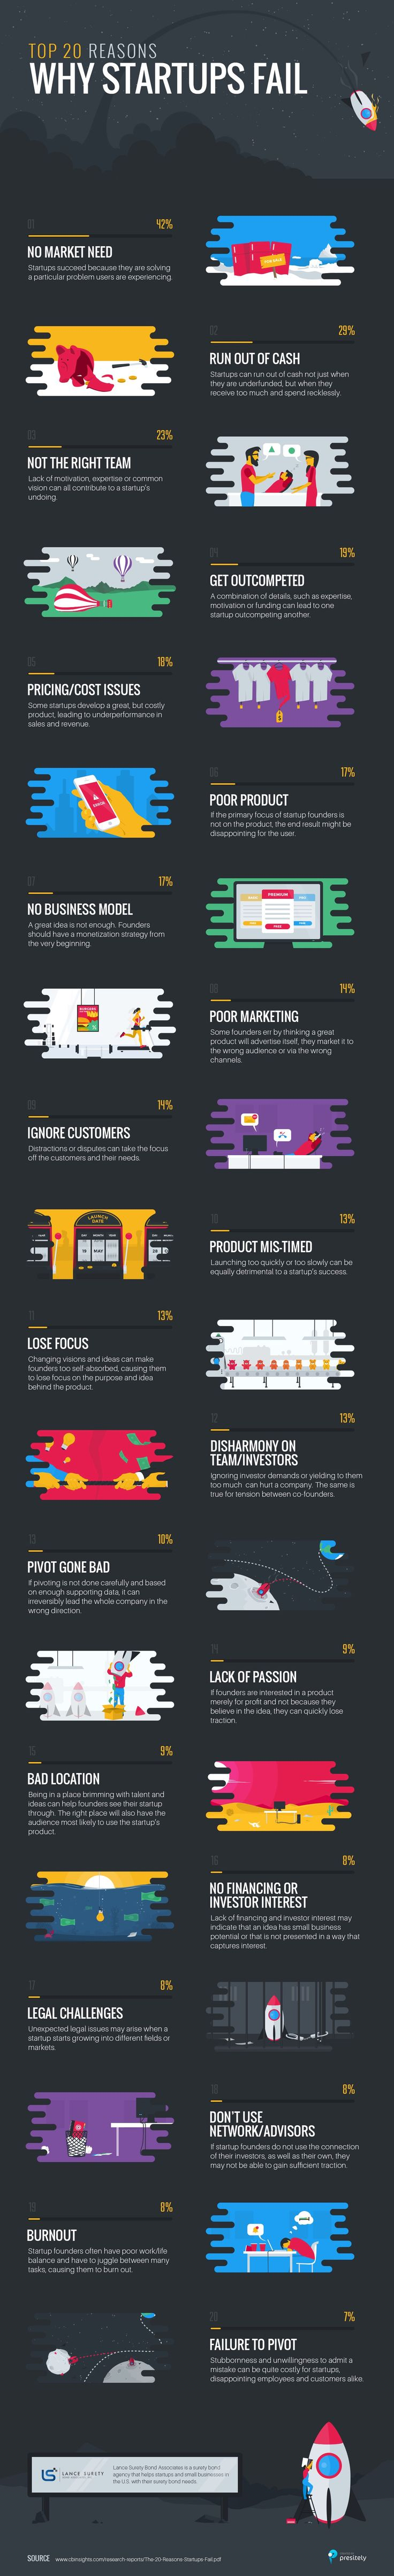 Top 20 Reasons Startups Fail (Infographic) — All Things Marketing and Entrepreneurship — Medium